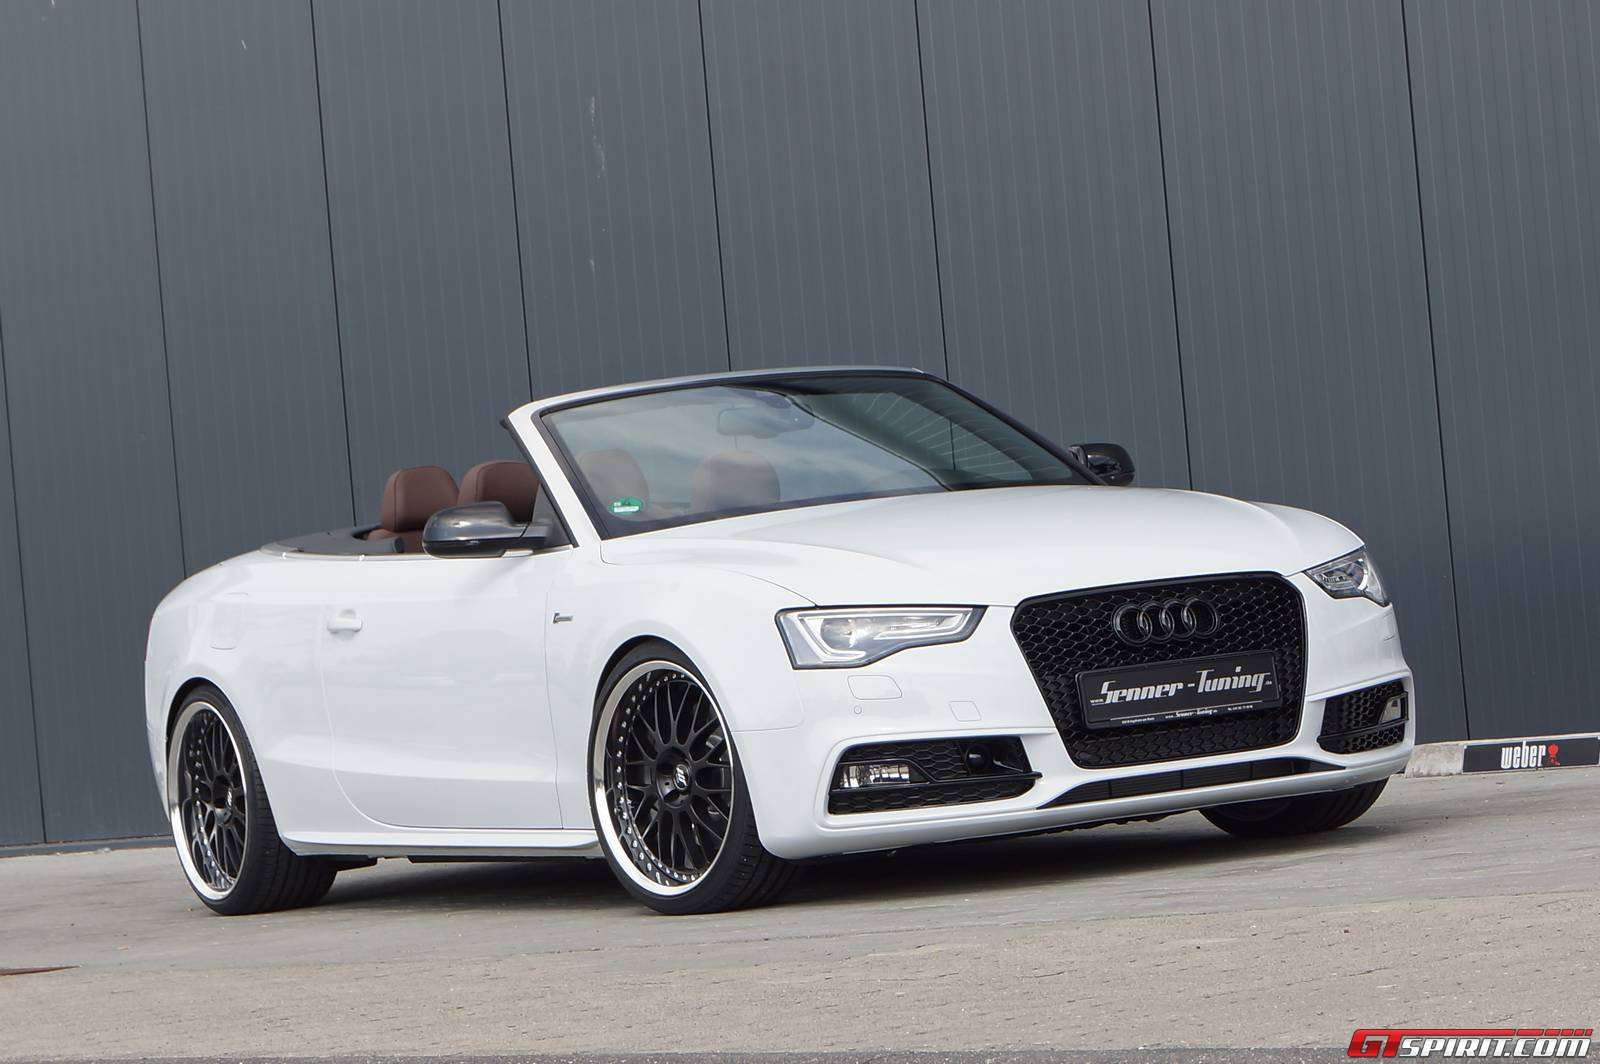 Official: Glacier White Metallic Audi S5 Cabriolet by Senner Tuning